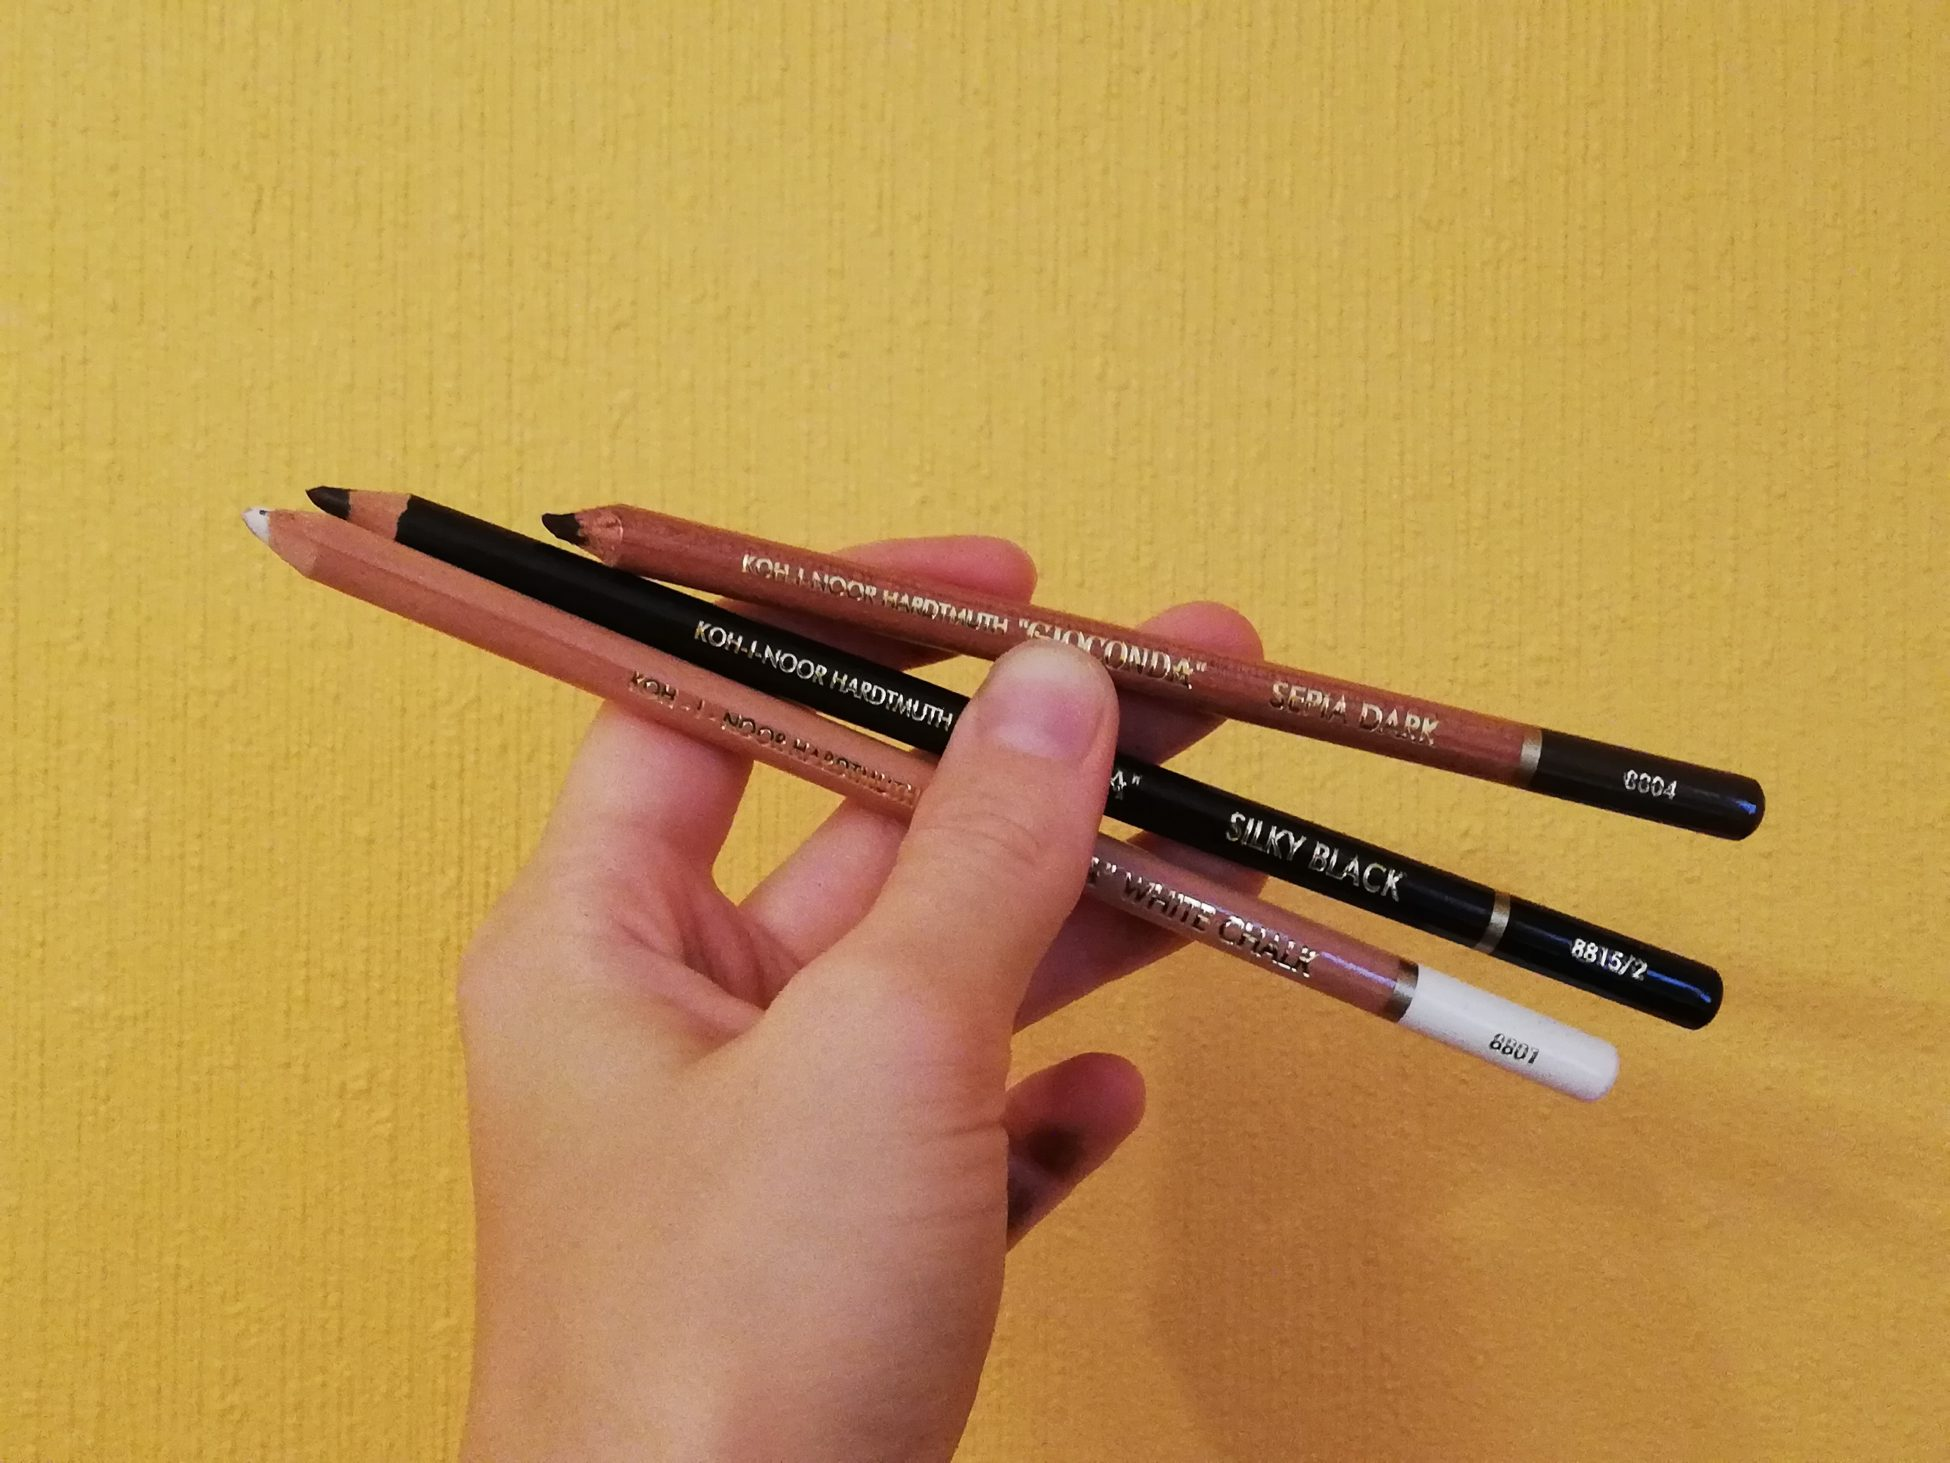 Special Artist's Pencils Koh-I-Noor Gioconda: How Good Are They?